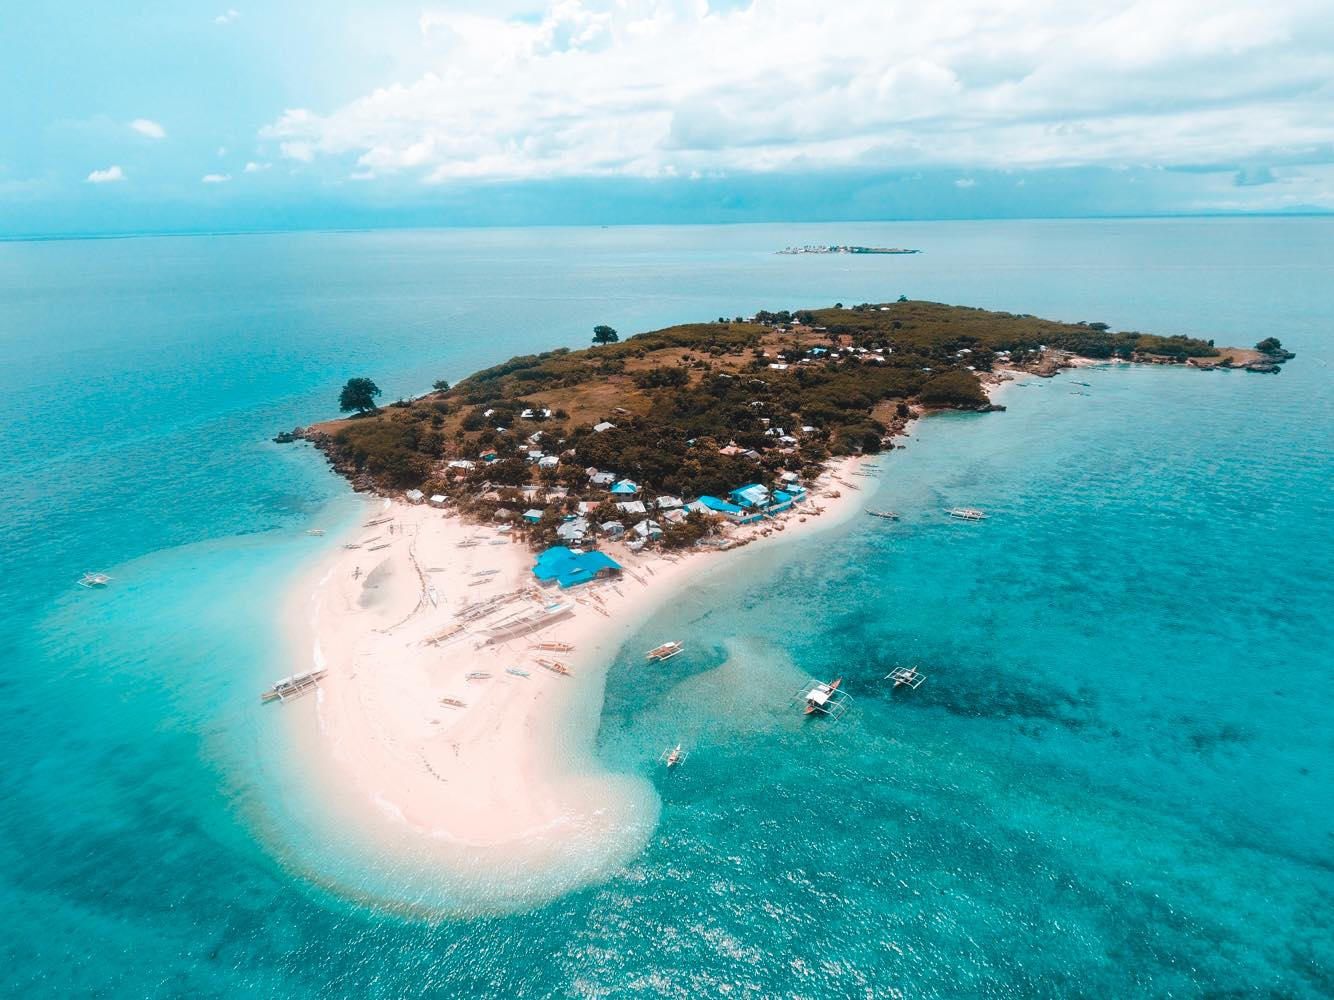 Philippine islands - Bantayan Island